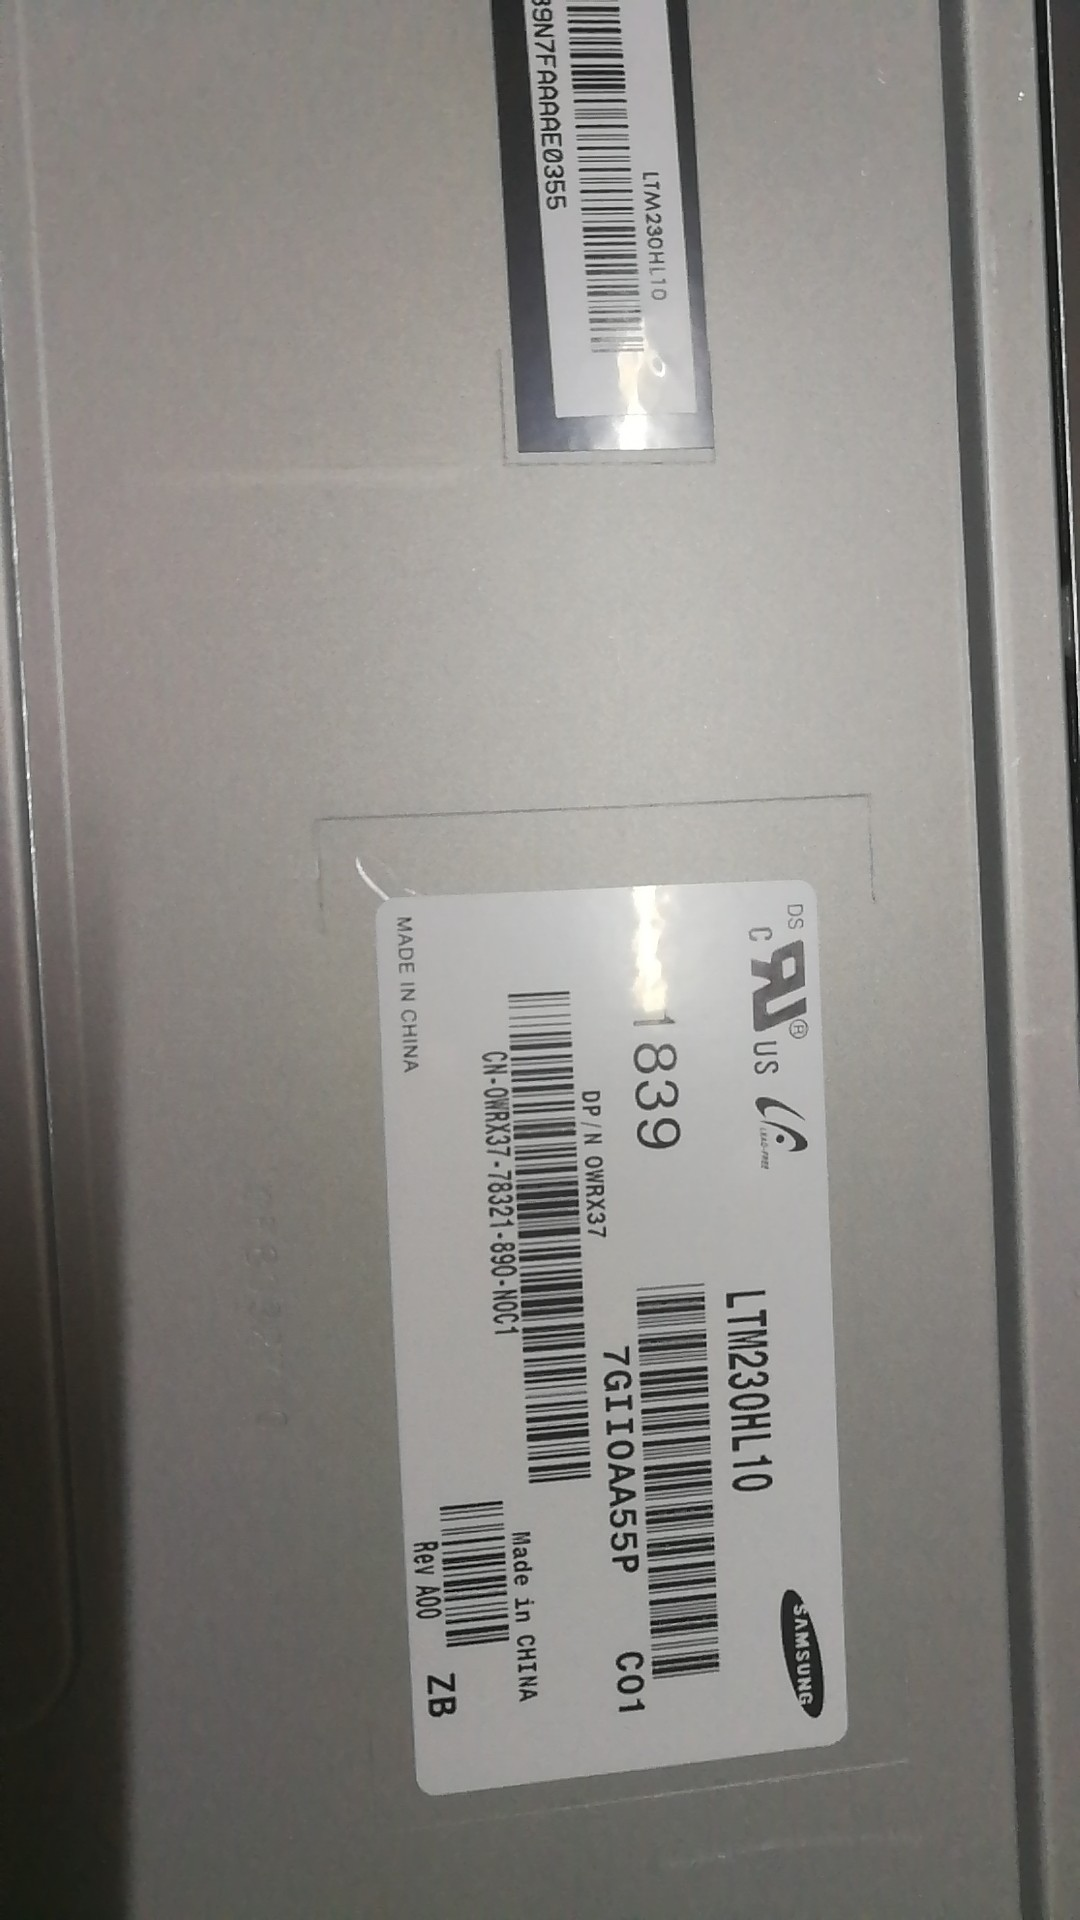 Samsung LTM215HT03HT05 HL01 LTM230HL08HL07LTM230HL10 integrated LCD screen